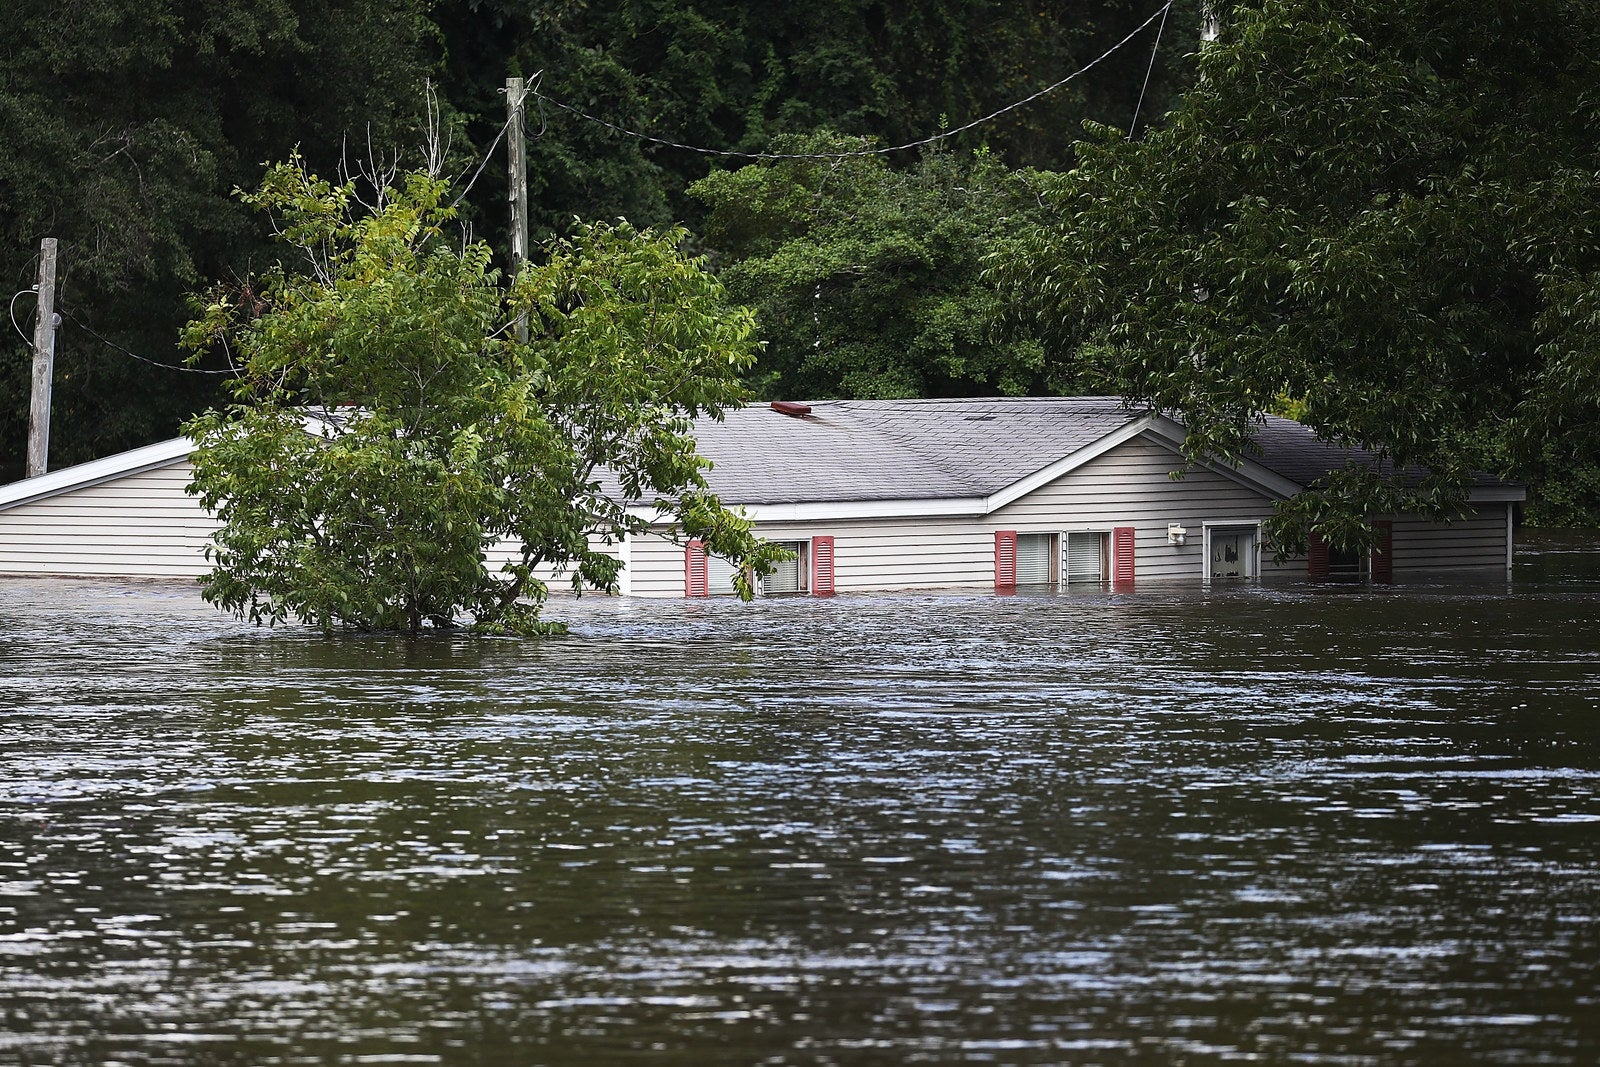 Floodwaters from the cresting Little River inundated the area of Spring Lake, North Carolina, during Hurricane Florence, Sept. 17.